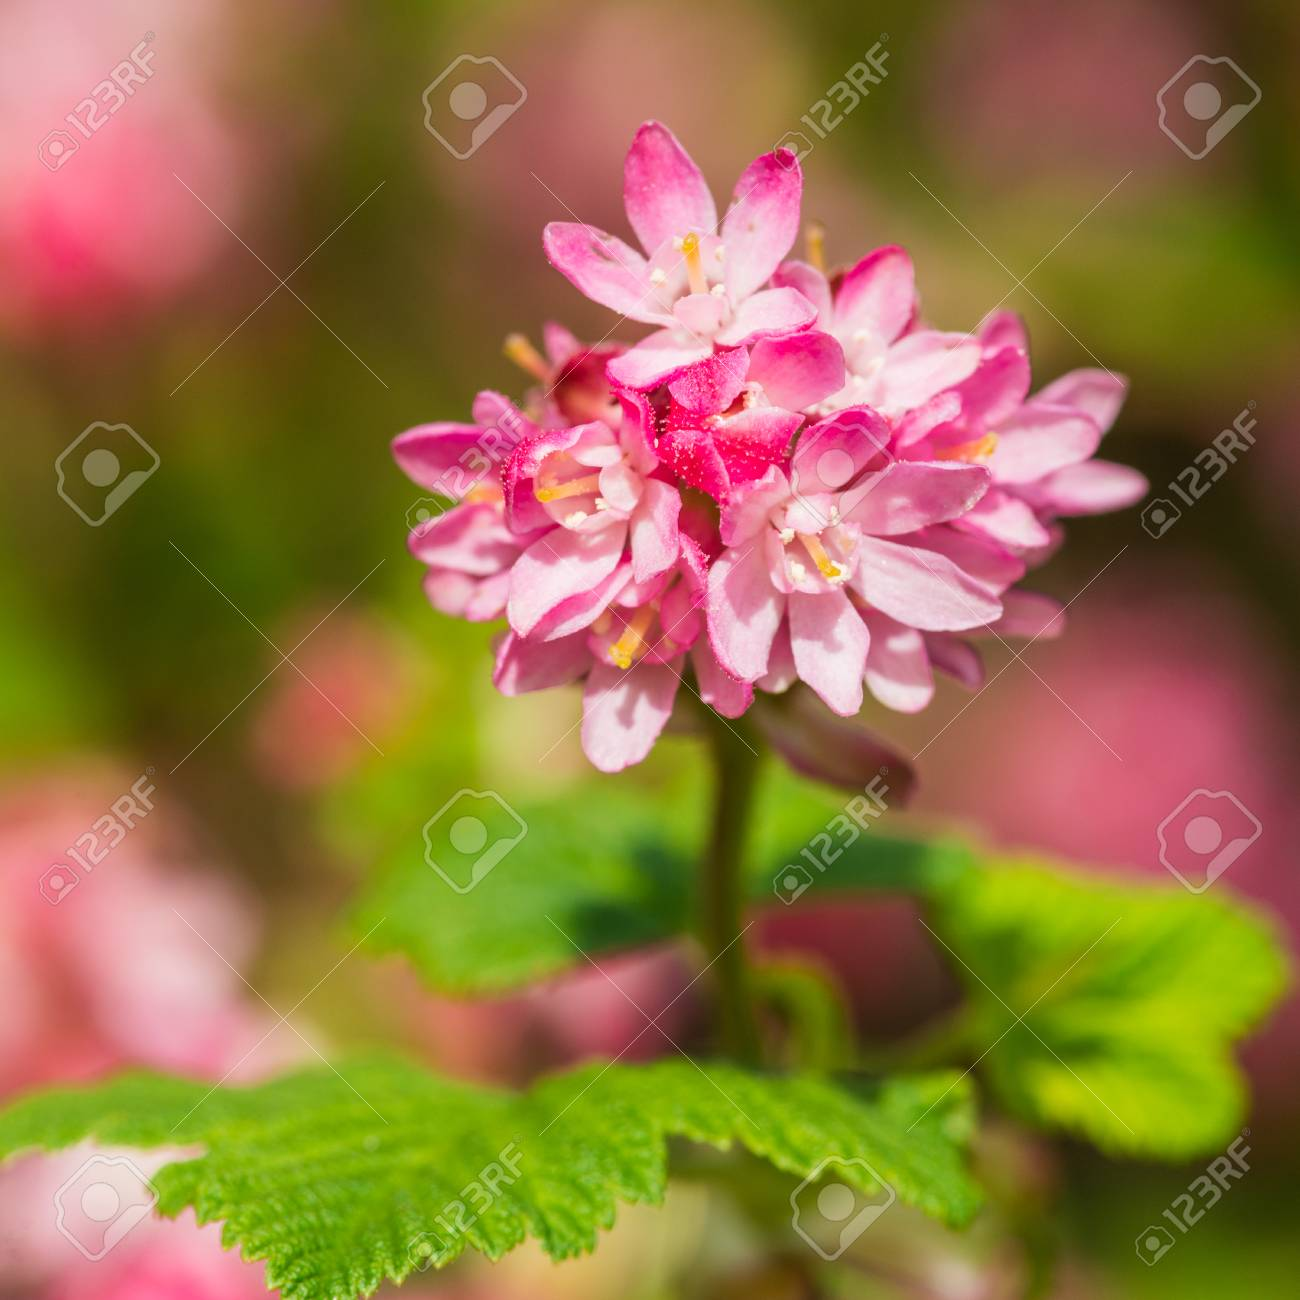 A Macro Shot Of A Pink Flowering Currant Bloom Stock Photo Picture